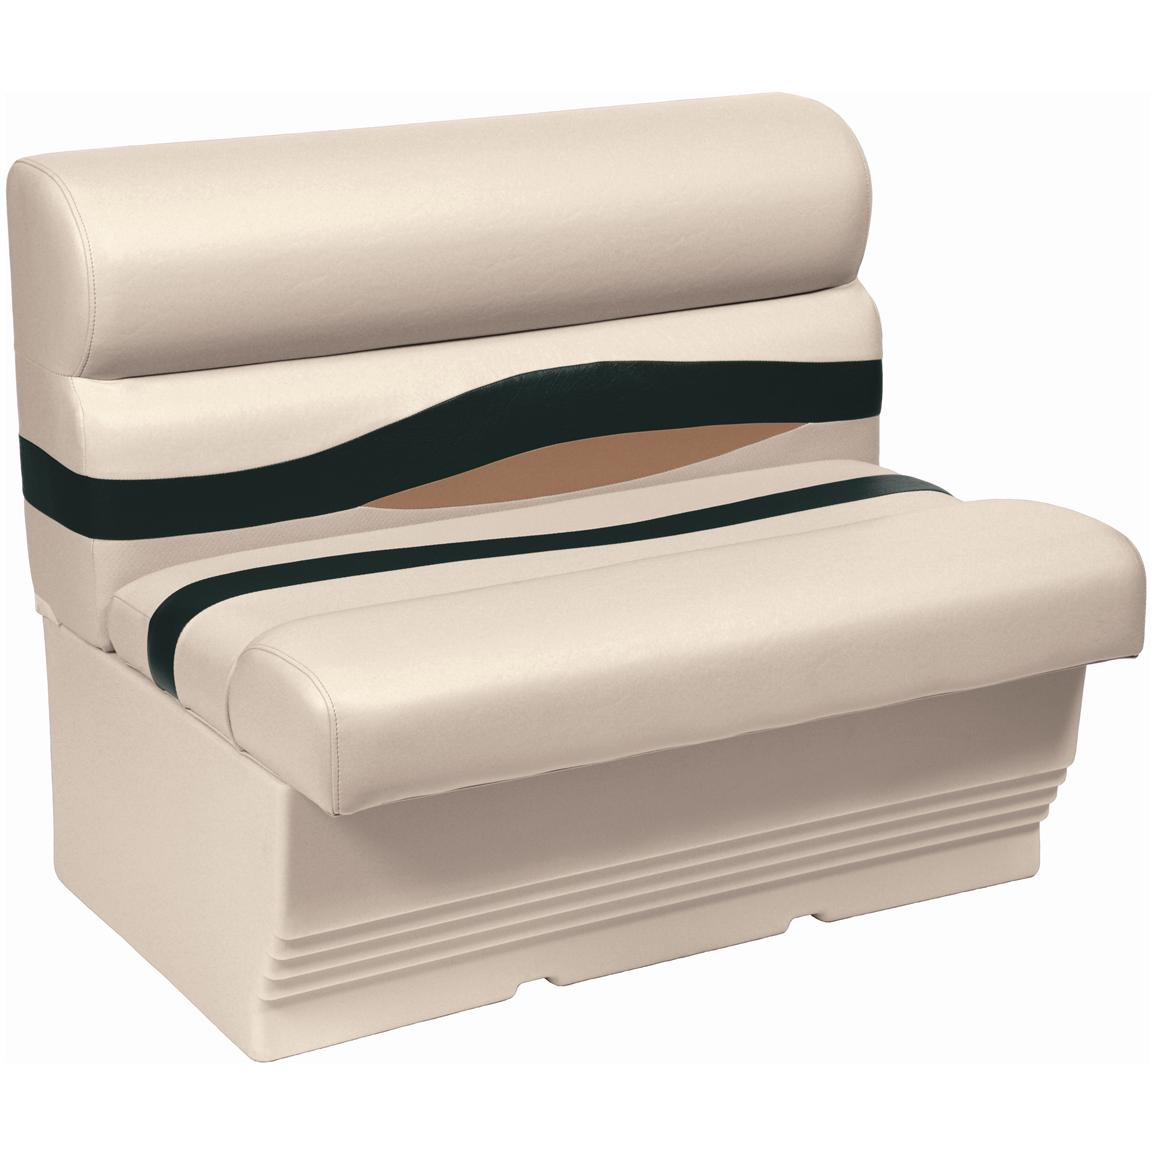 "Wise® Premier 45"" Pontoon Bench Seat, Color B - Platinum Punch / Jade / Fawn"